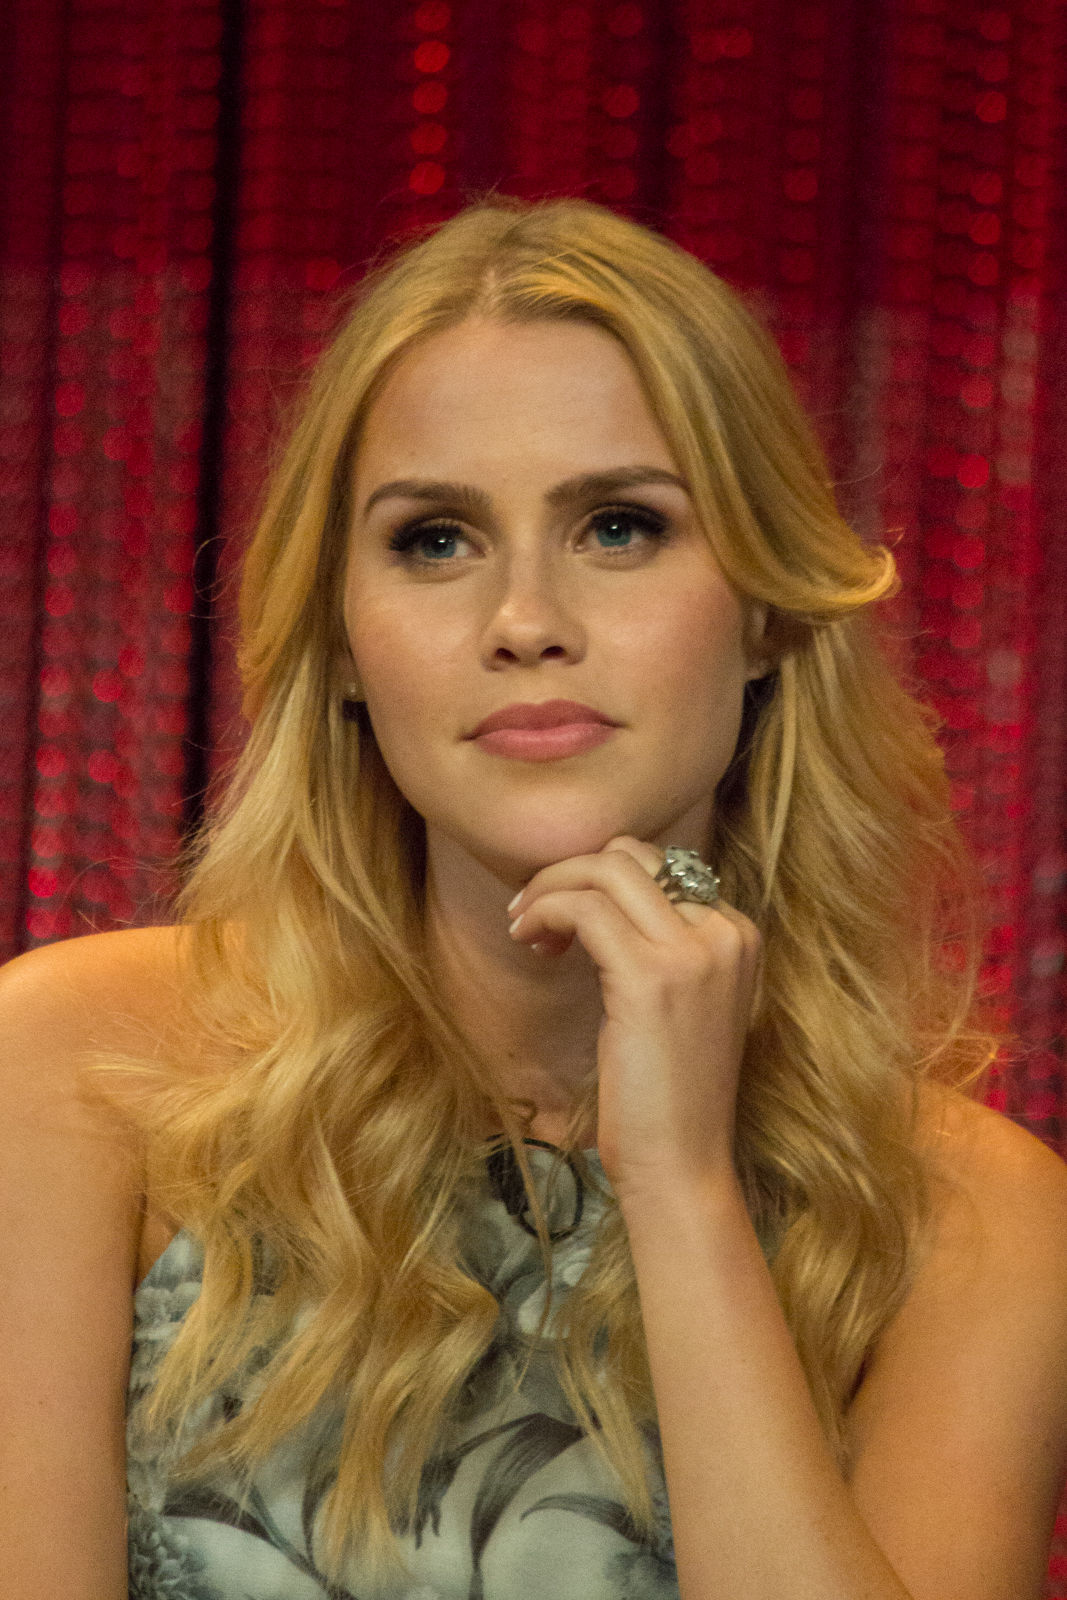 Photo of Claire Holt: Australian actress and model